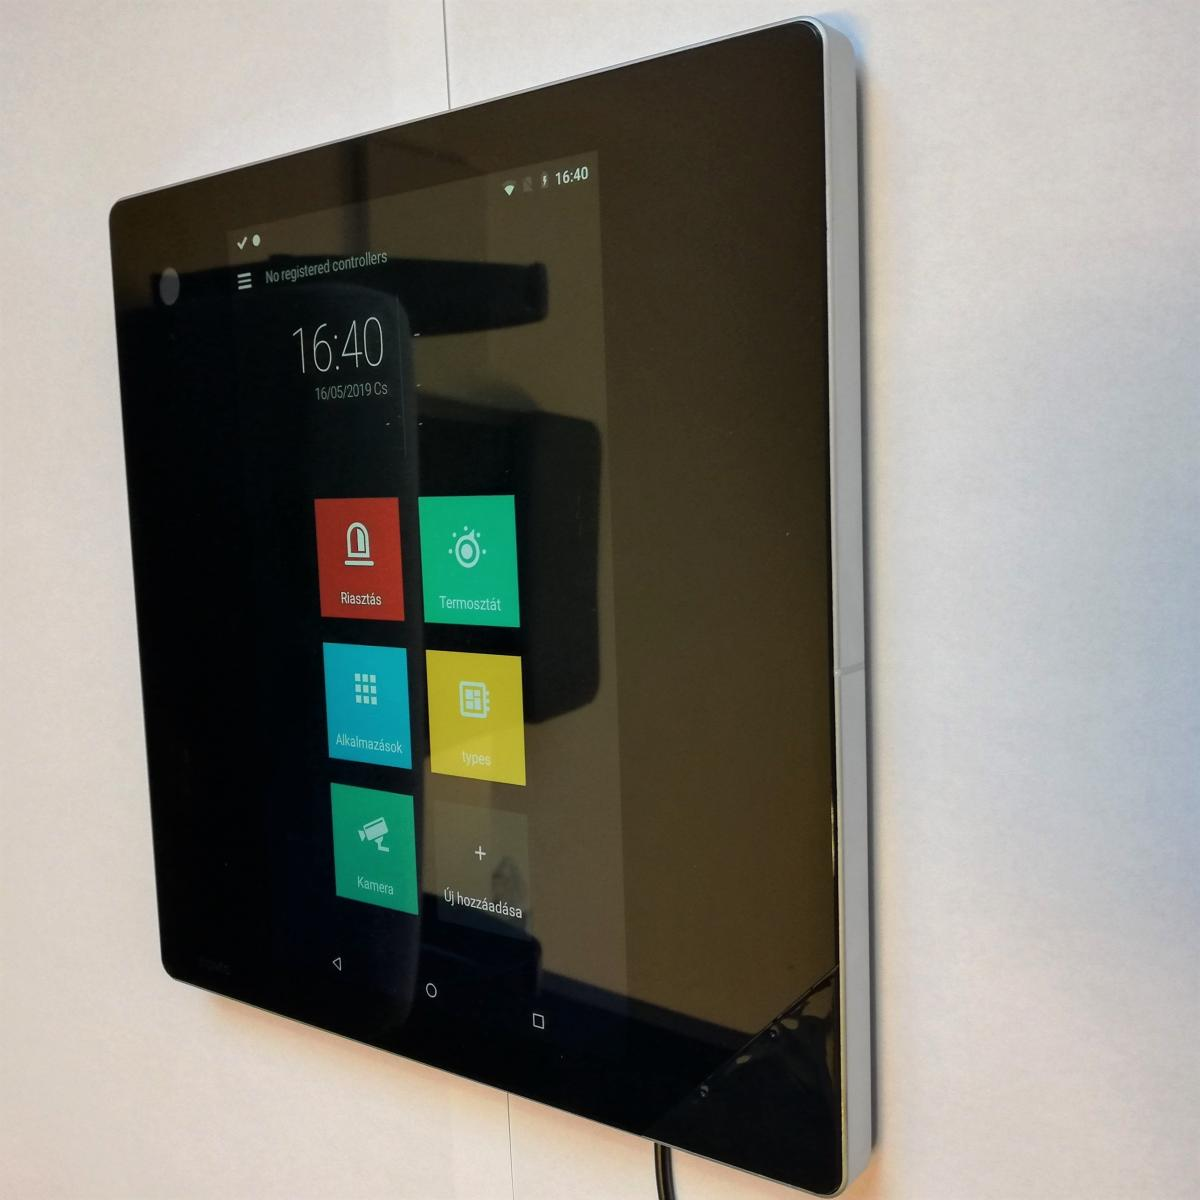 The new smart home control panel has arrived